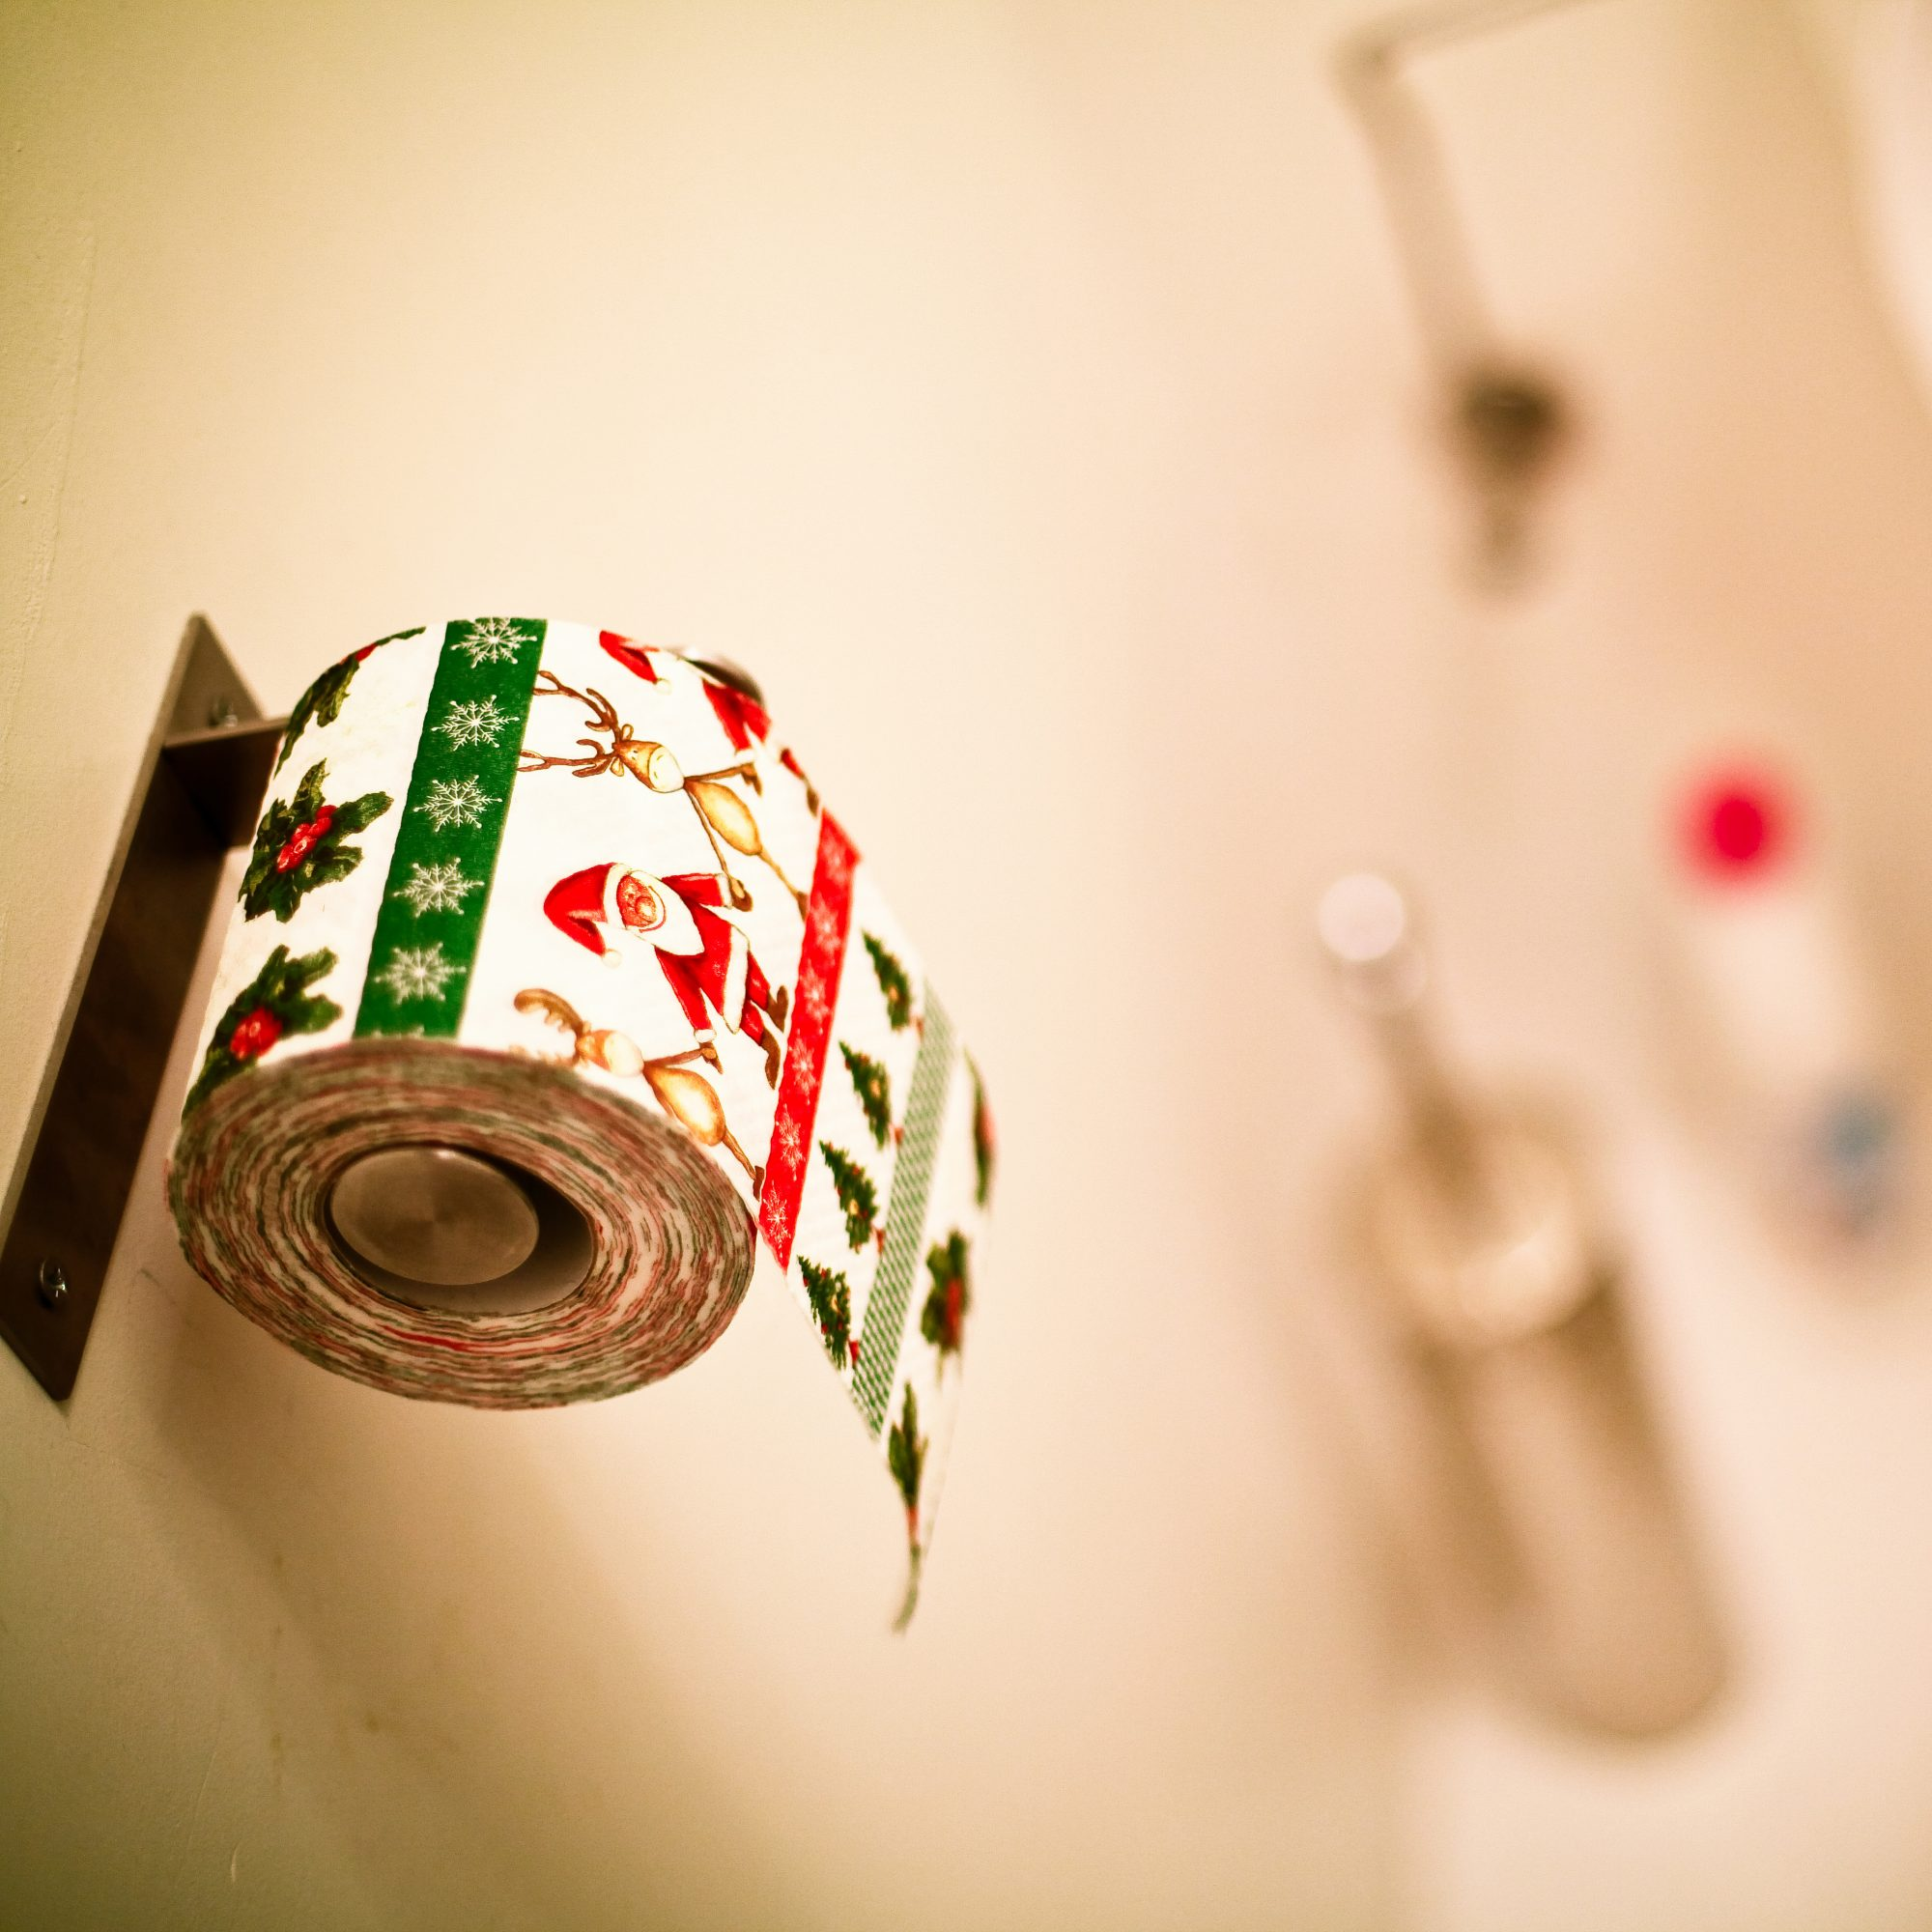 mulled-wine-toilet-paper-fwx